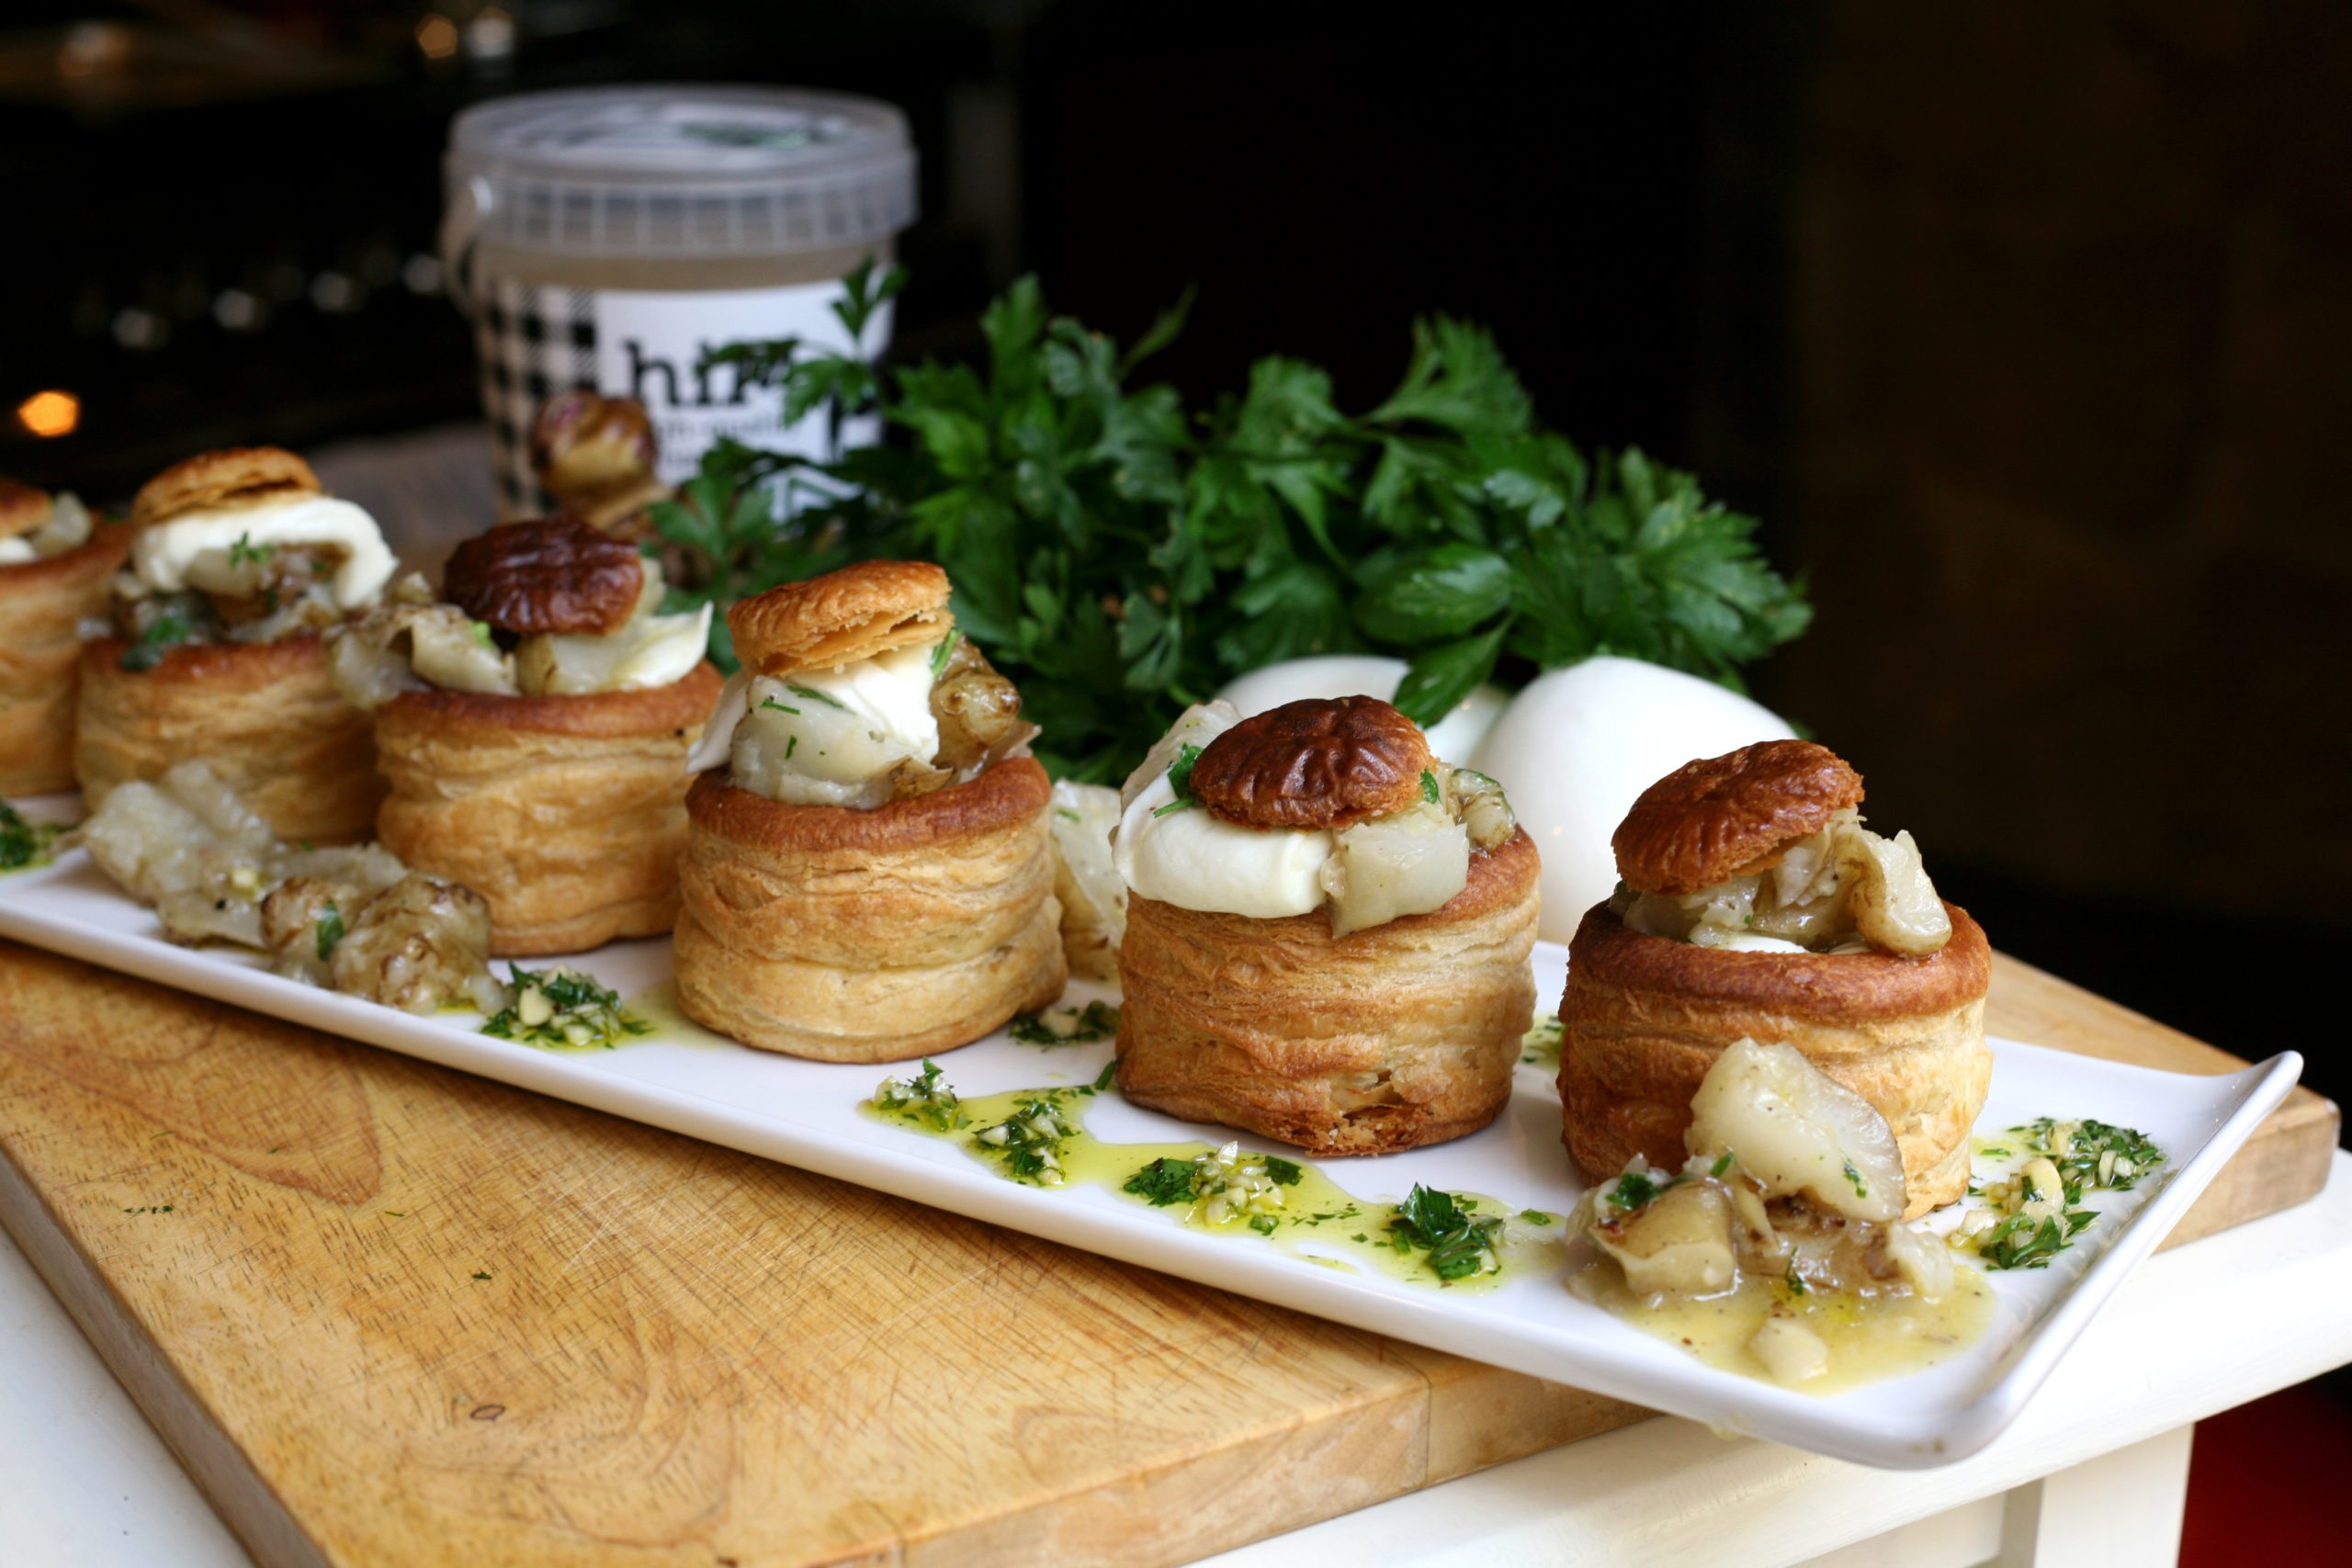 Jerusalem artichoke and mozzarella vol-au-vents